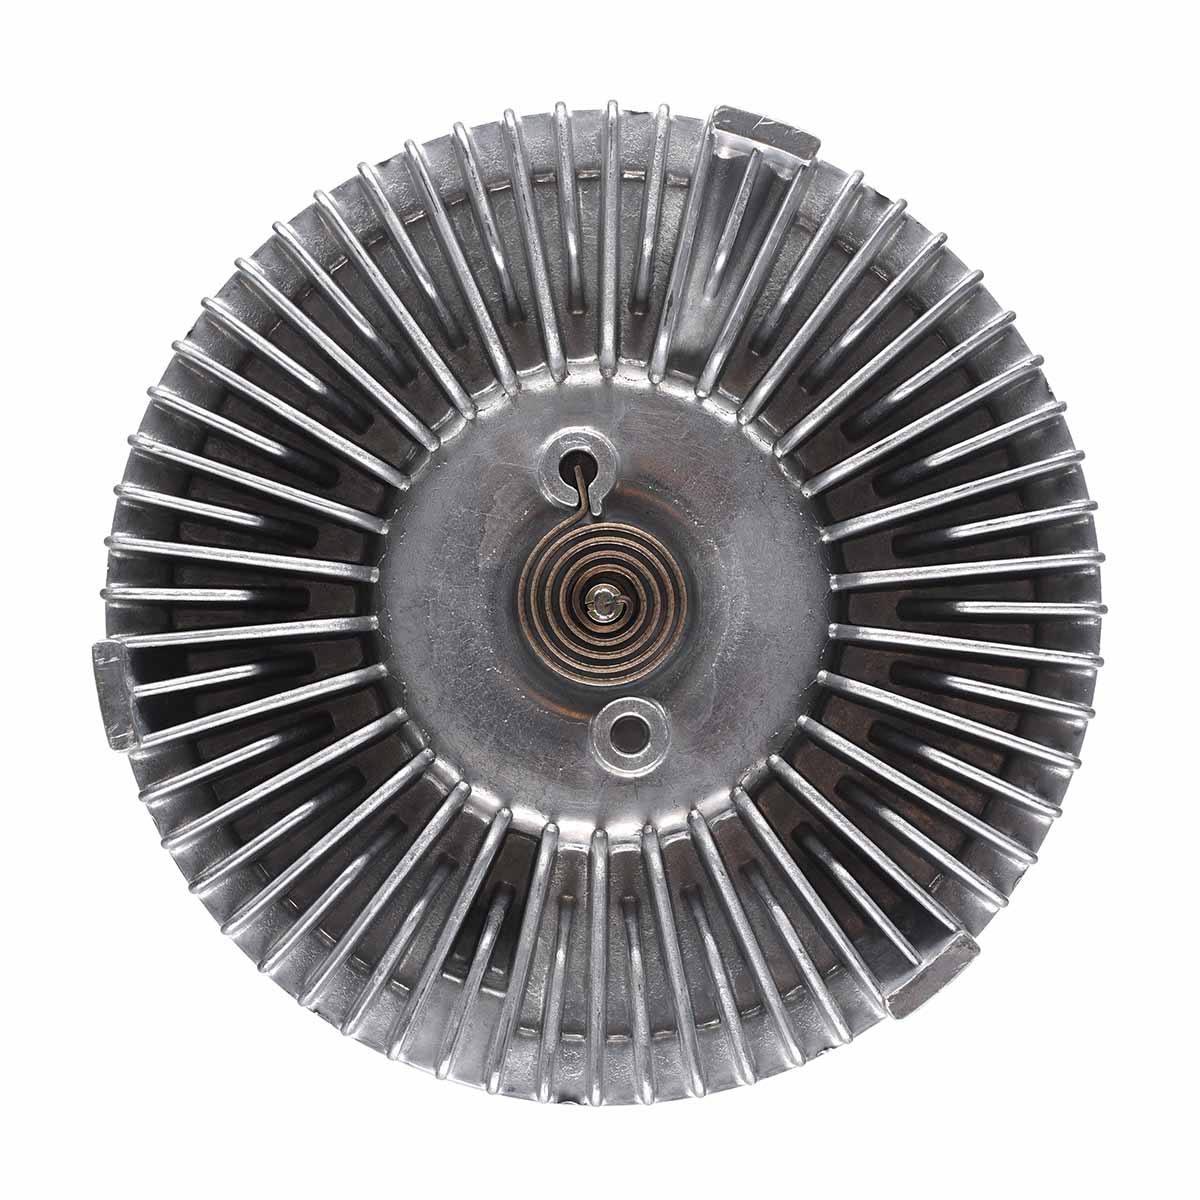 hight resolution of cooling fan clutch for ford crown victoria grand marquis lincoln town car mercury grand marquis 4 6l f6az8a616aa 2795 in fans kits from automobiles